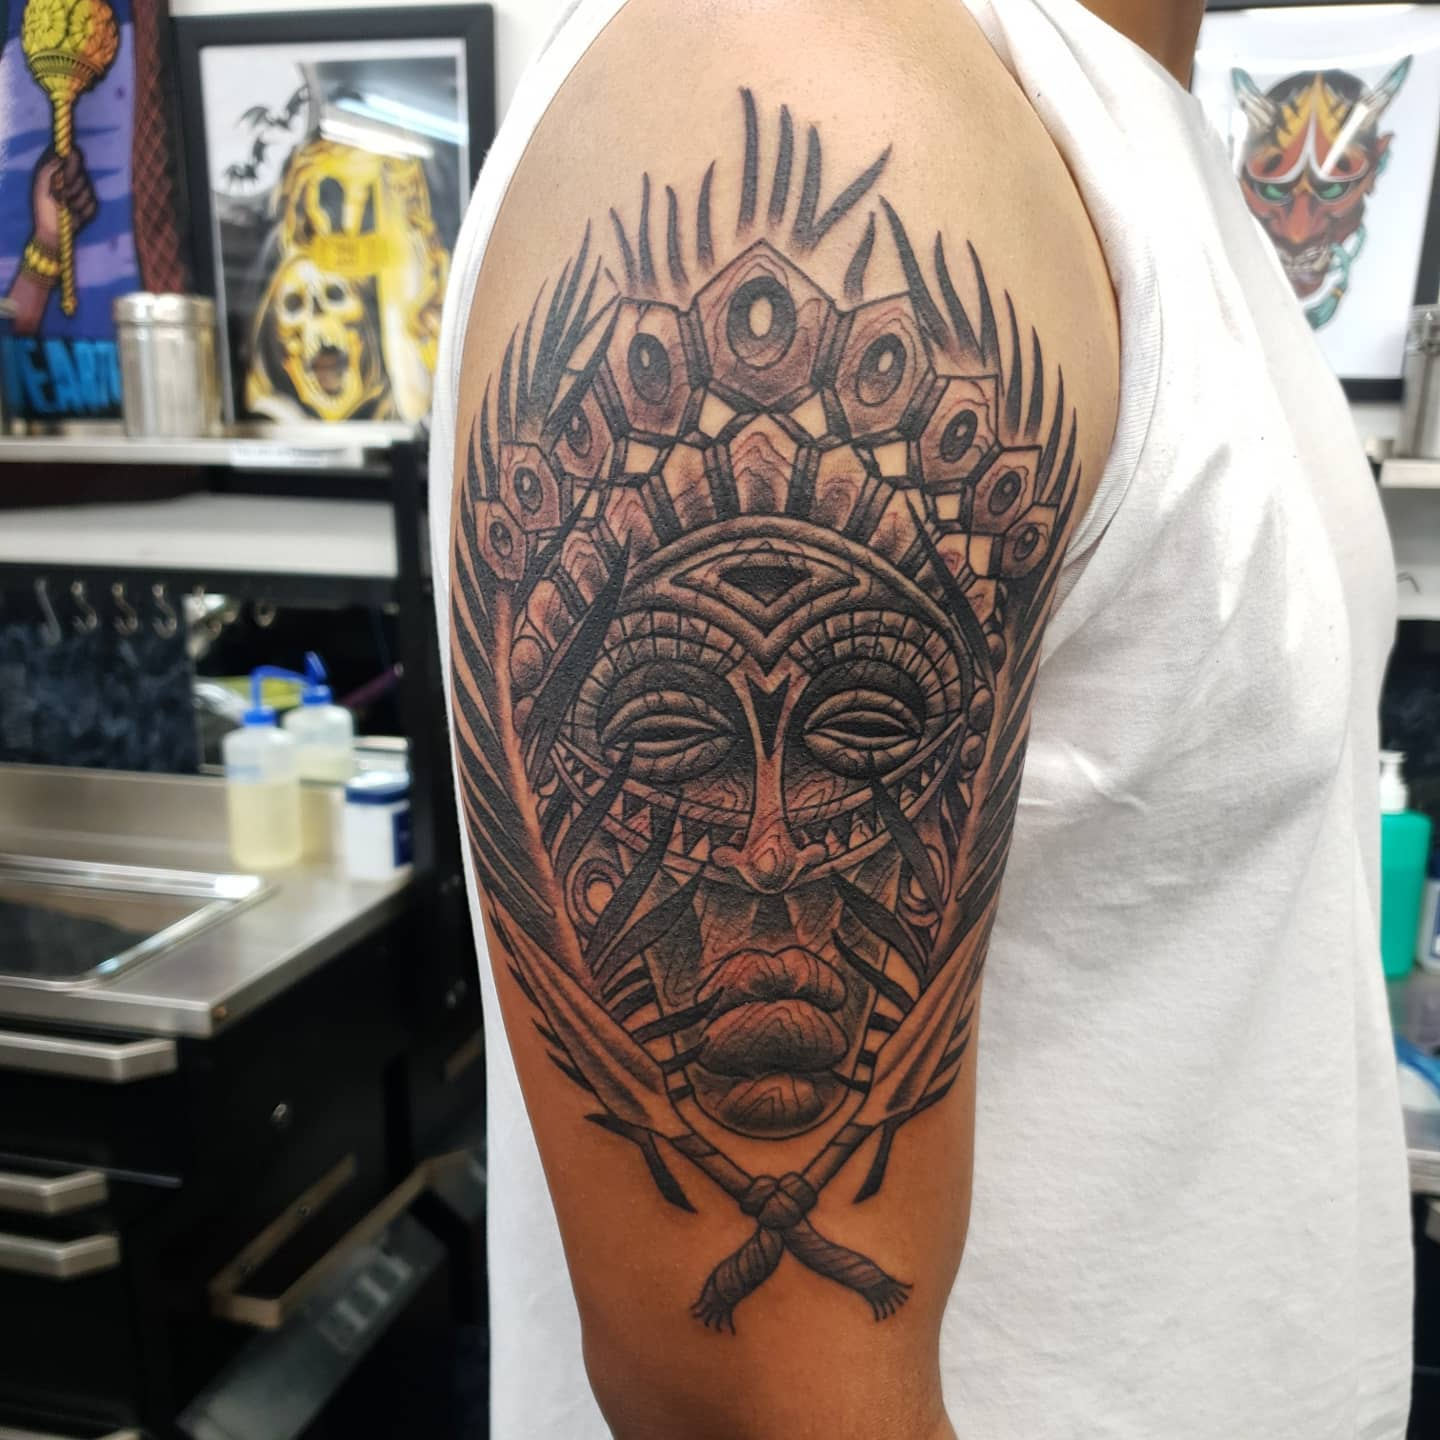 Great time with this africanmask inspired design for Joseph&039;s first tattoo- bossed it thank you mate made @studioxiiigallery tribalmask tribalmasktattoo africanmasktattoo sudaneseheritage sudan traditionaltattooing tradtattoos ferntattoo traditionalblackandgrey woodeffect mask masktattoo tattoos traditionaltattoos firsttattoo boldwillhold bright_and_bold btattooing culture cleantattooing scottishtattooer edinburghtattooer edinburgh scotland tattoosbyalanross alrosstattoo studioxiiigallery studioxiii